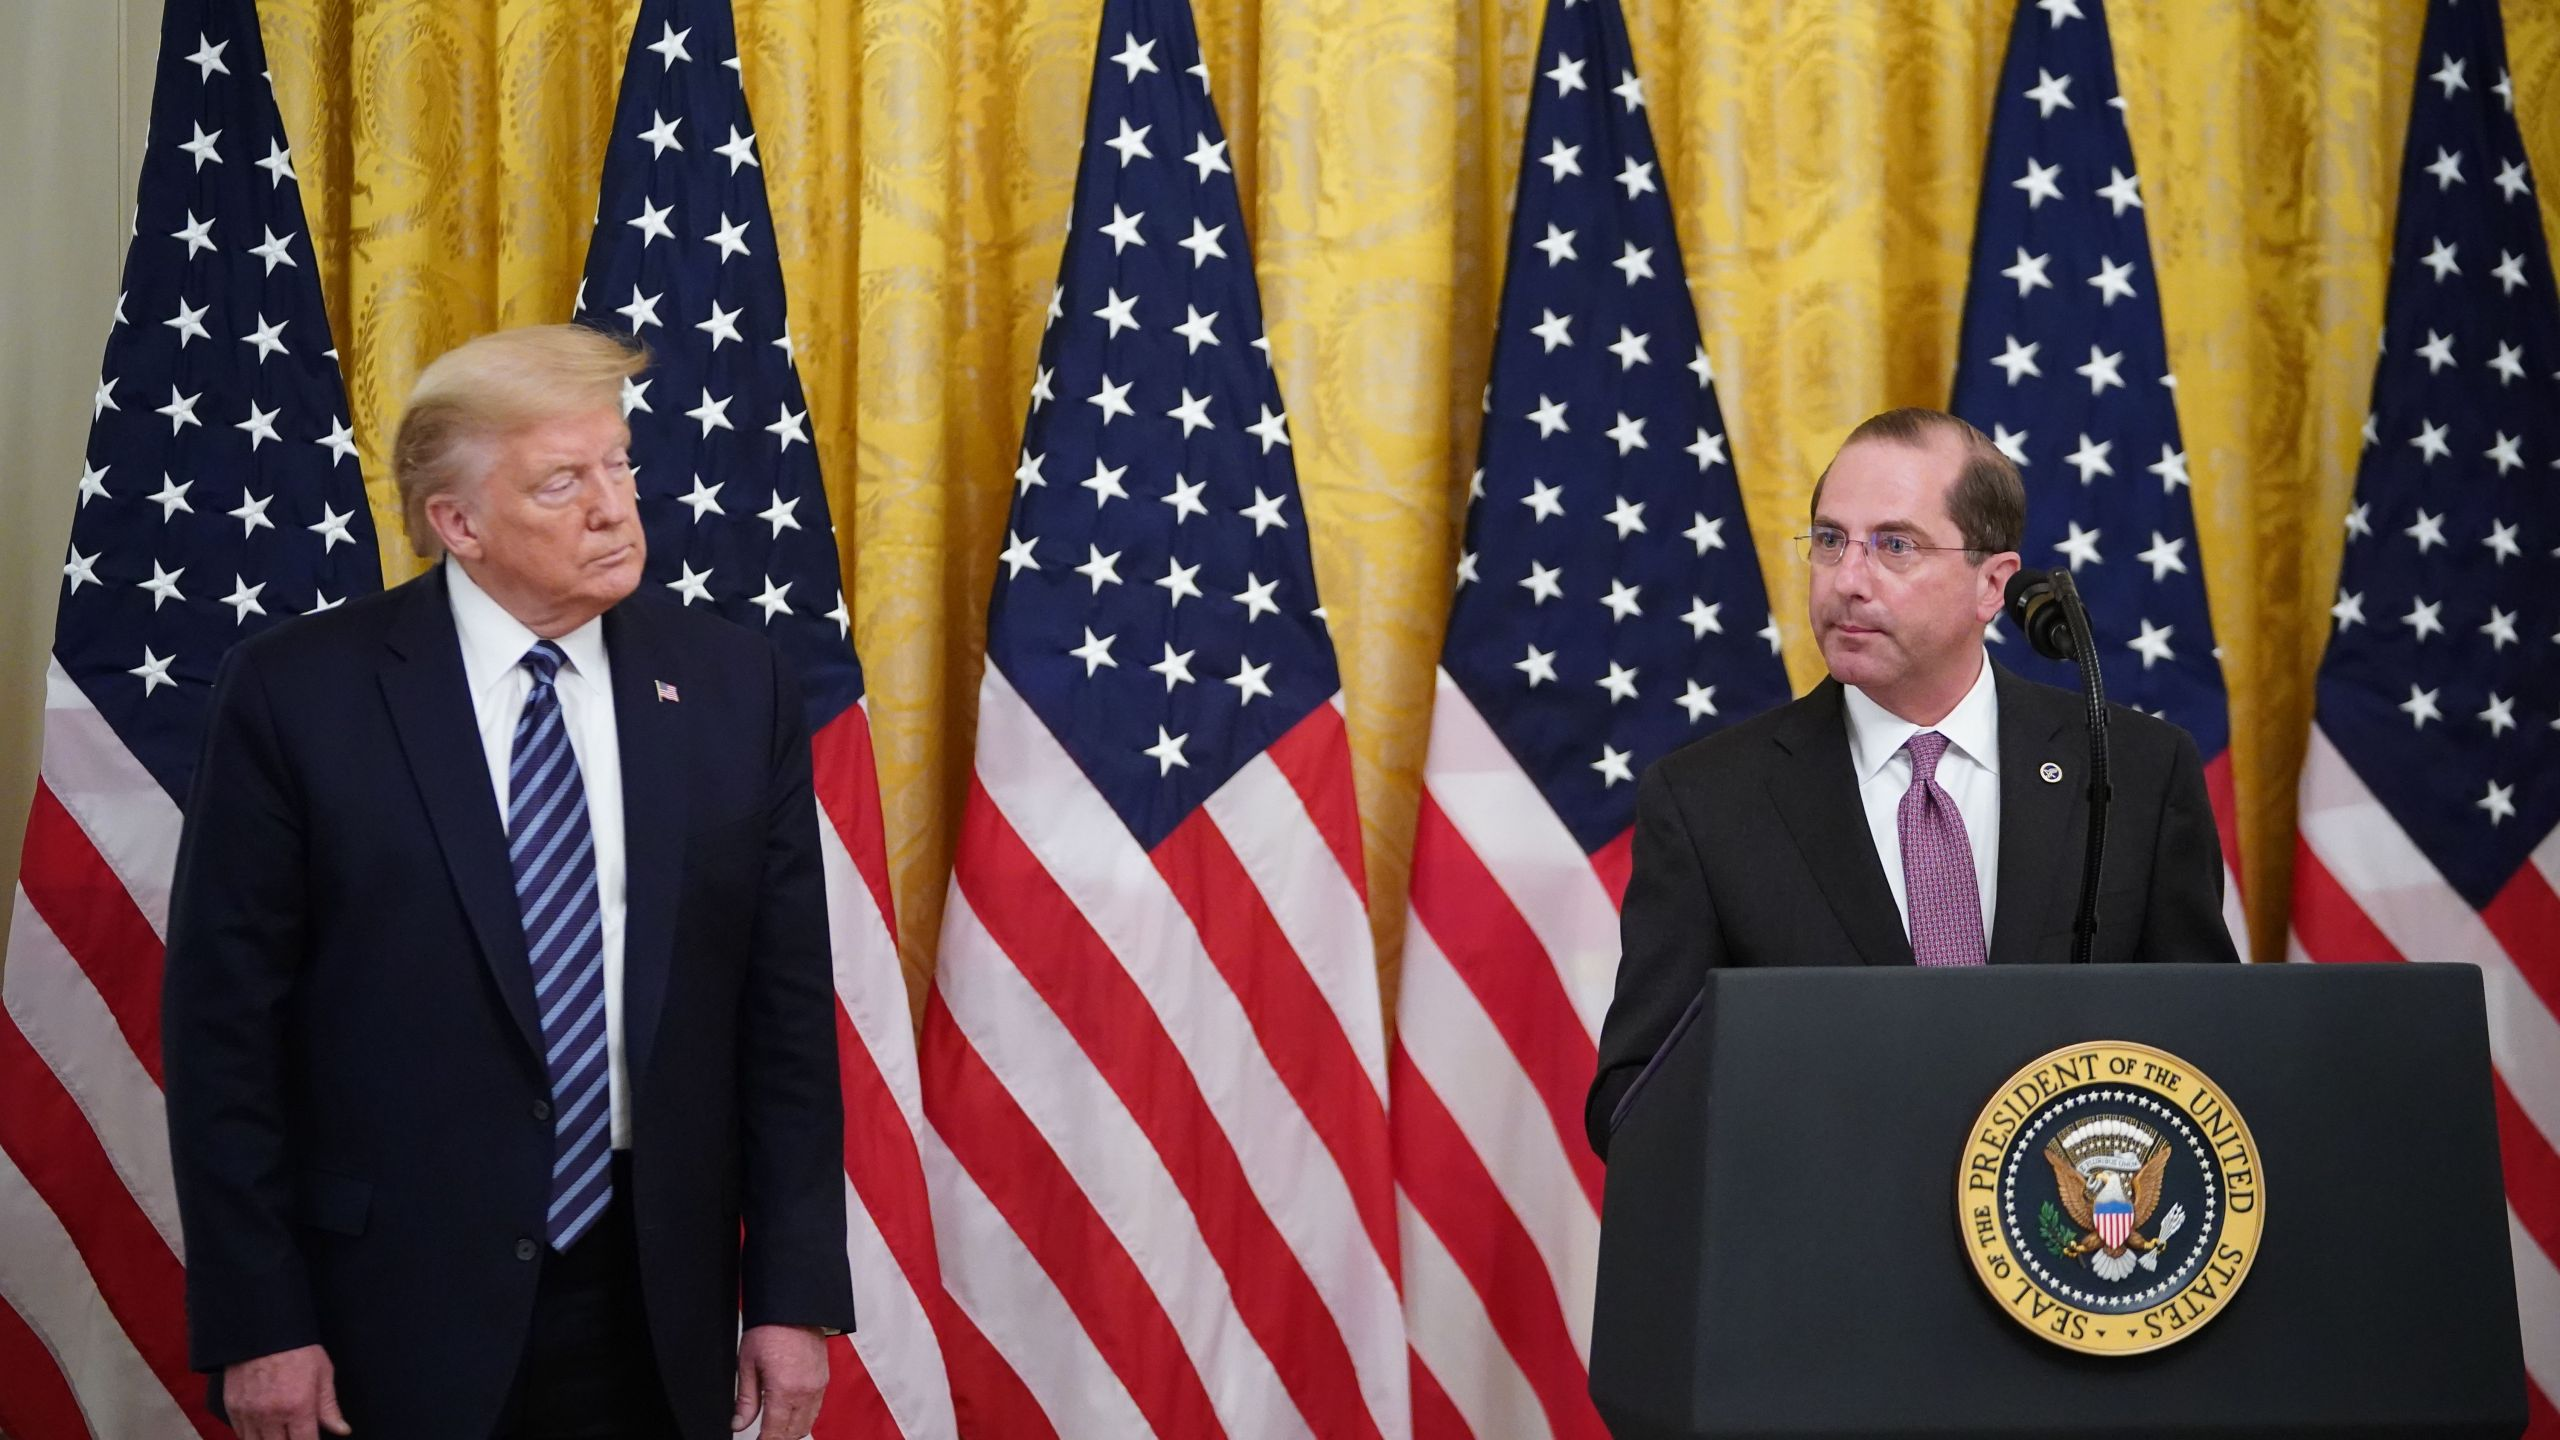 President Donald Trump listens as Secretary of Health and Human Services Alex Azar speaks on protecting Americas seniors from the COVID-19 pandemic in the East Room of the White House in Washington, D.C. on April 30, 2020. (MANDEL NGAN/AFP via Getty Images)